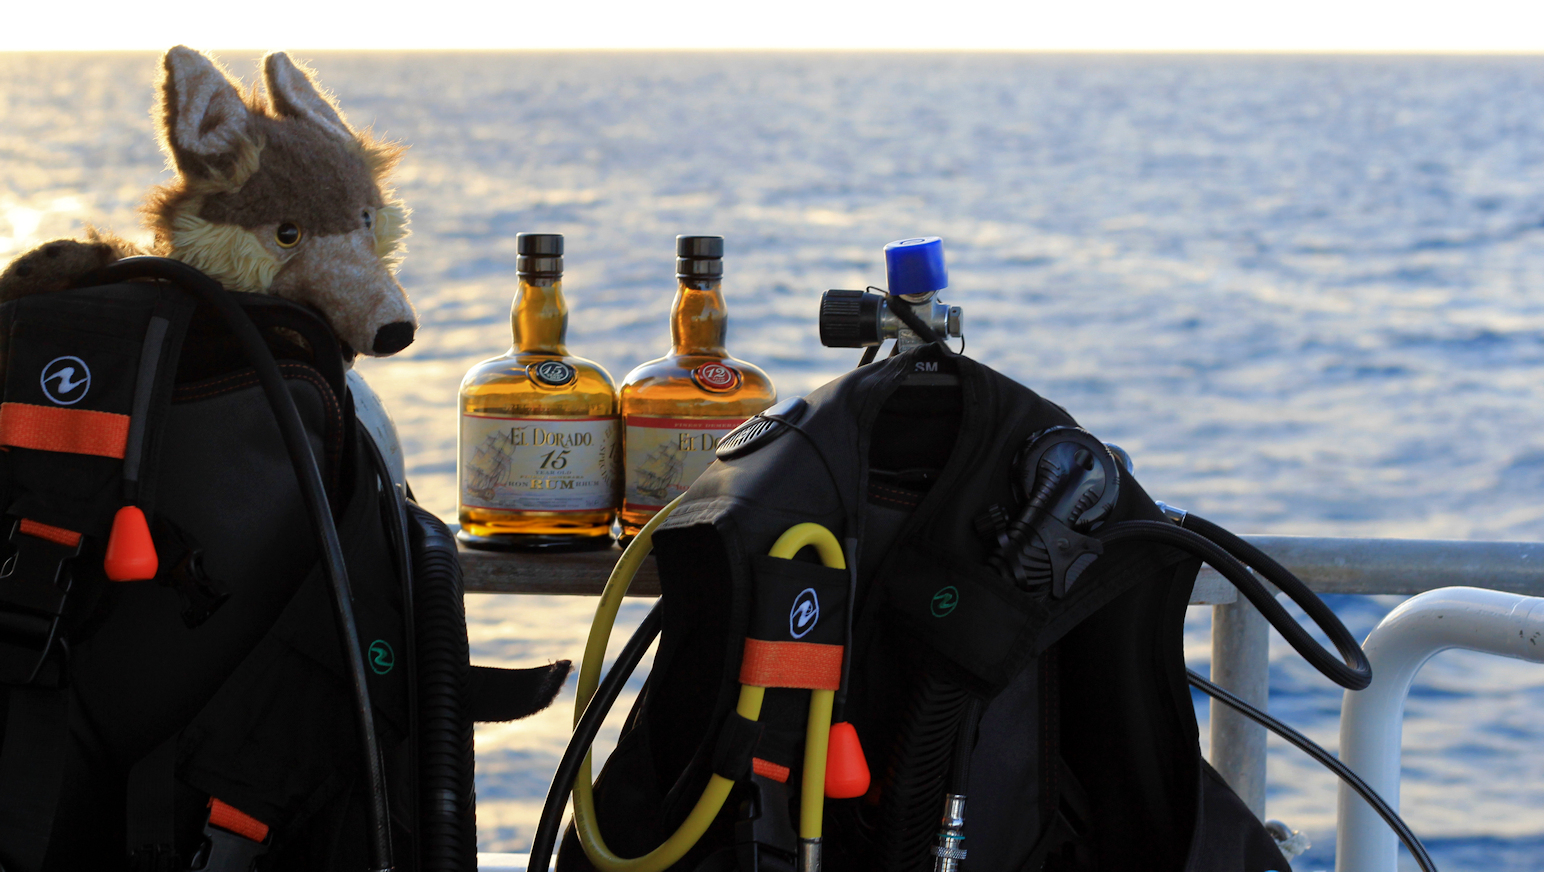 Hitch readies dive gear in case of rum overboard.